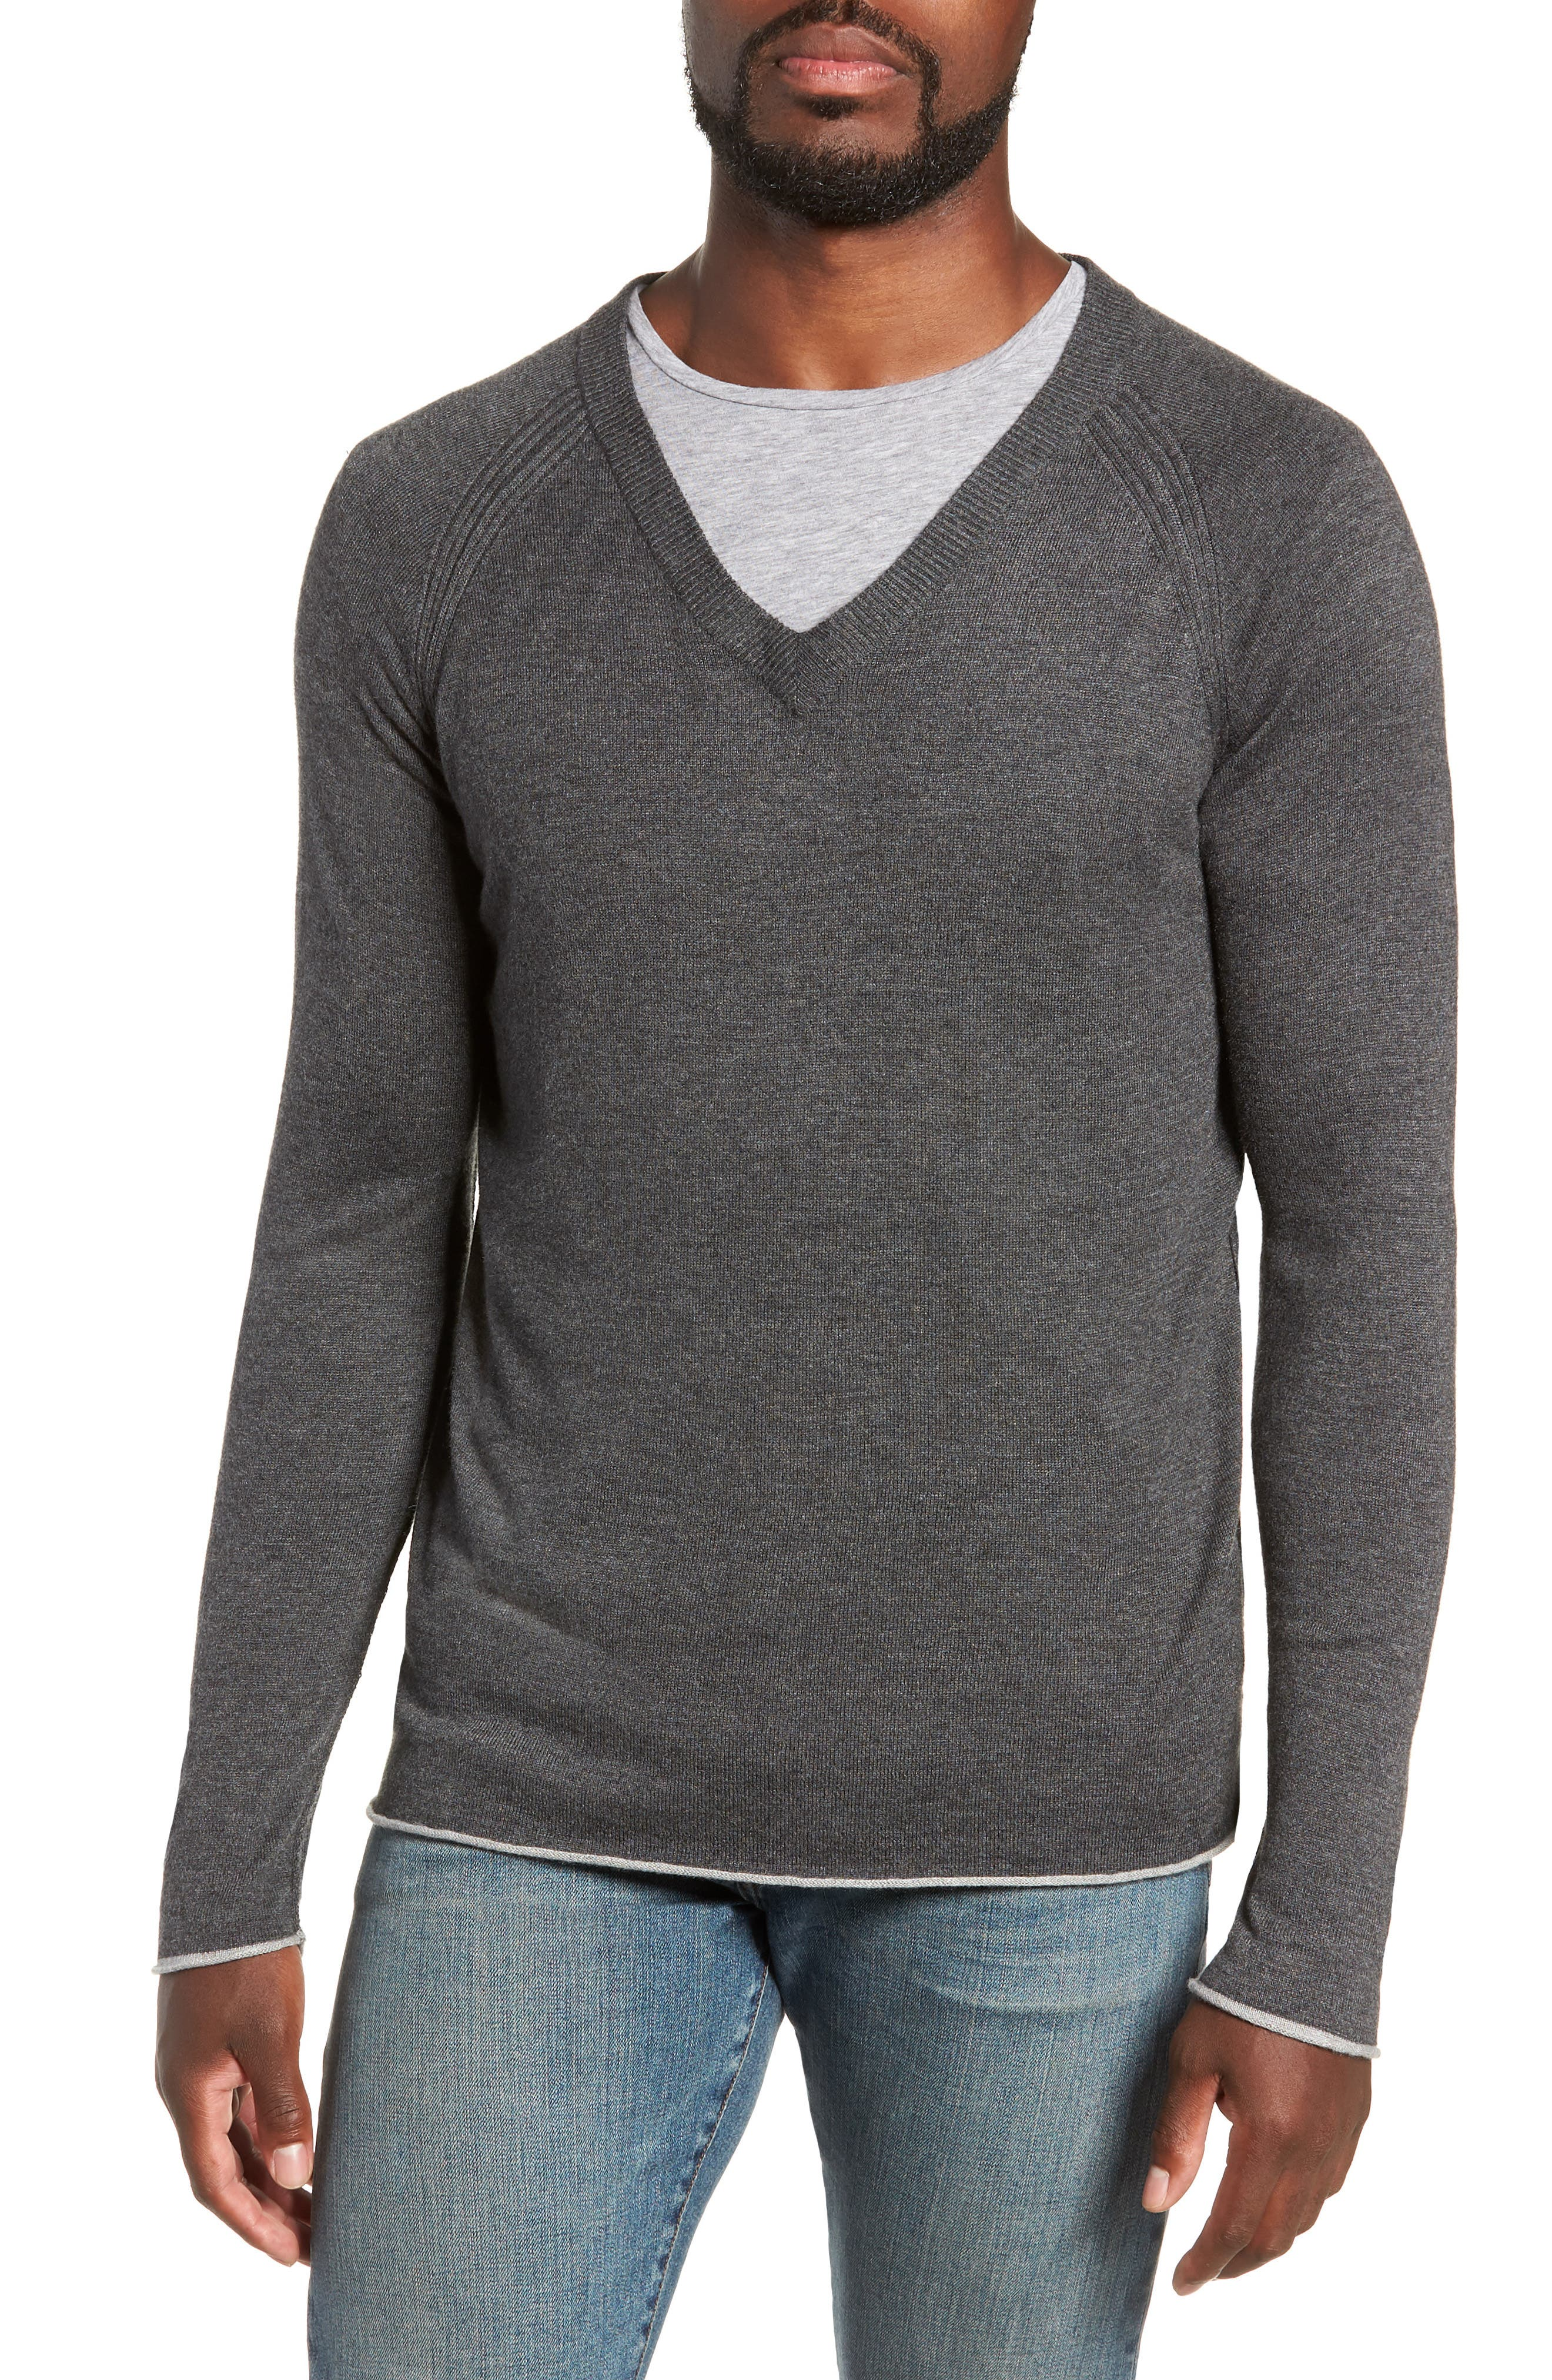 Salinas Cash V-Neck Sweater,                         Main,                         color, CHARCOAL HEATHER